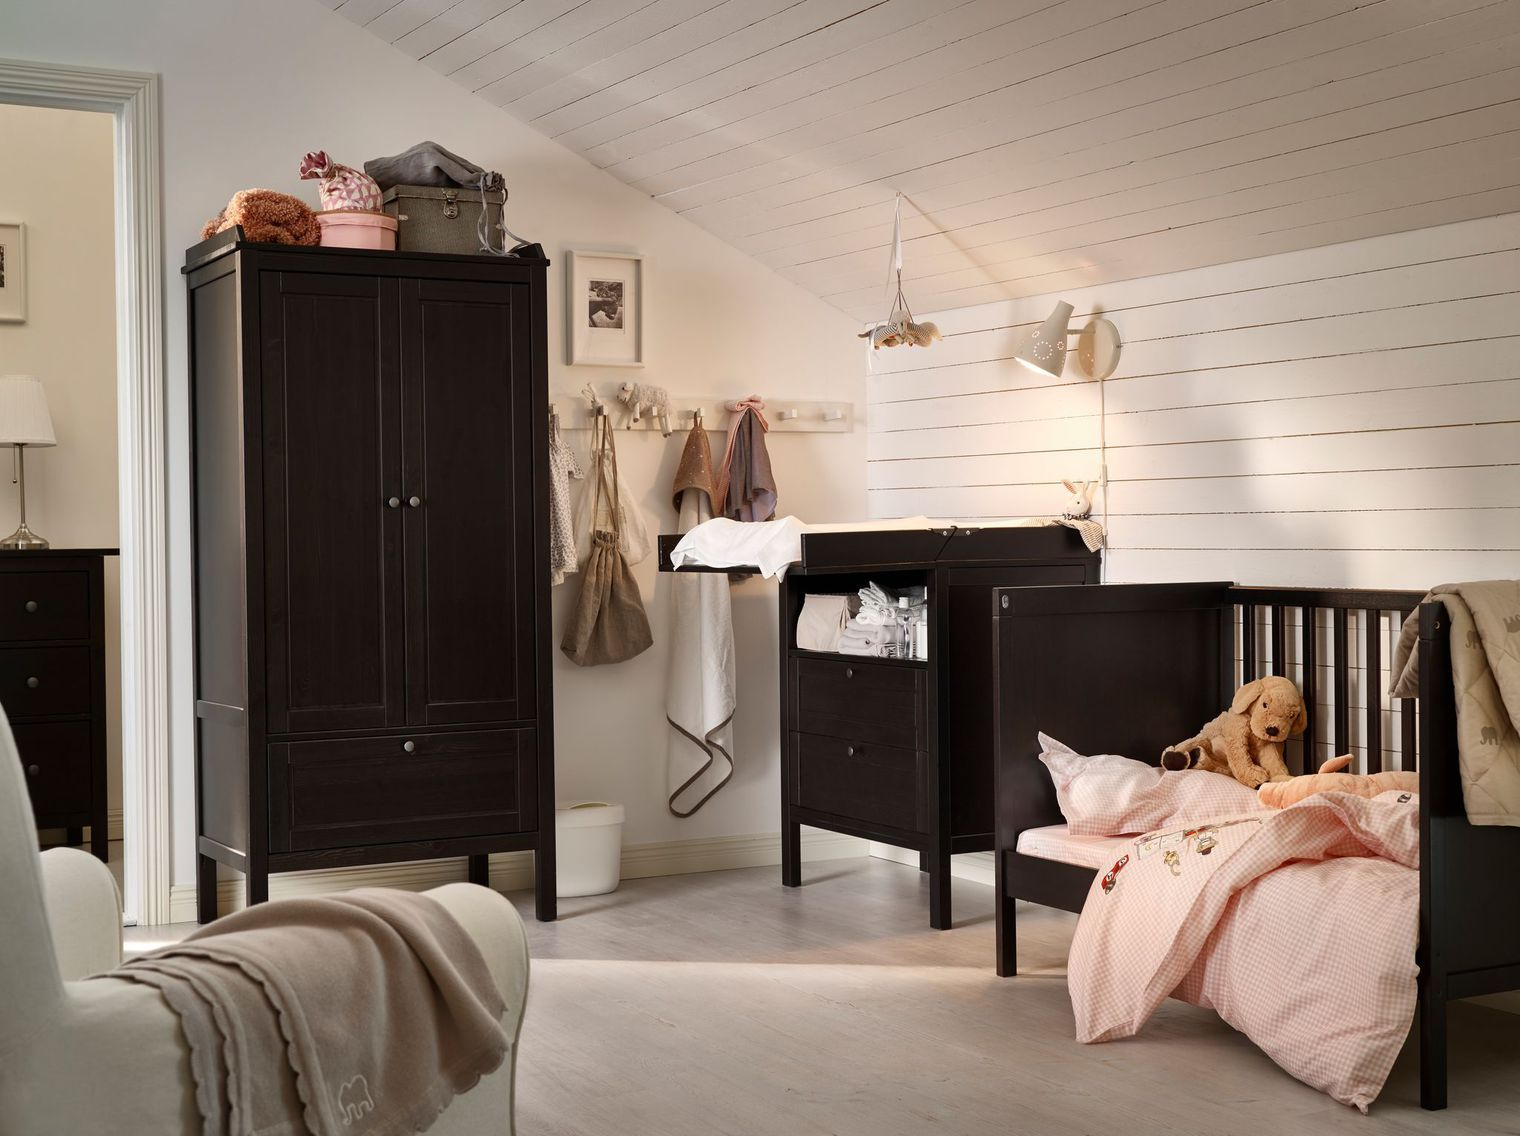 chambre b b des id es d co cosy b b. Black Bedroom Furniture Sets. Home Design Ideas